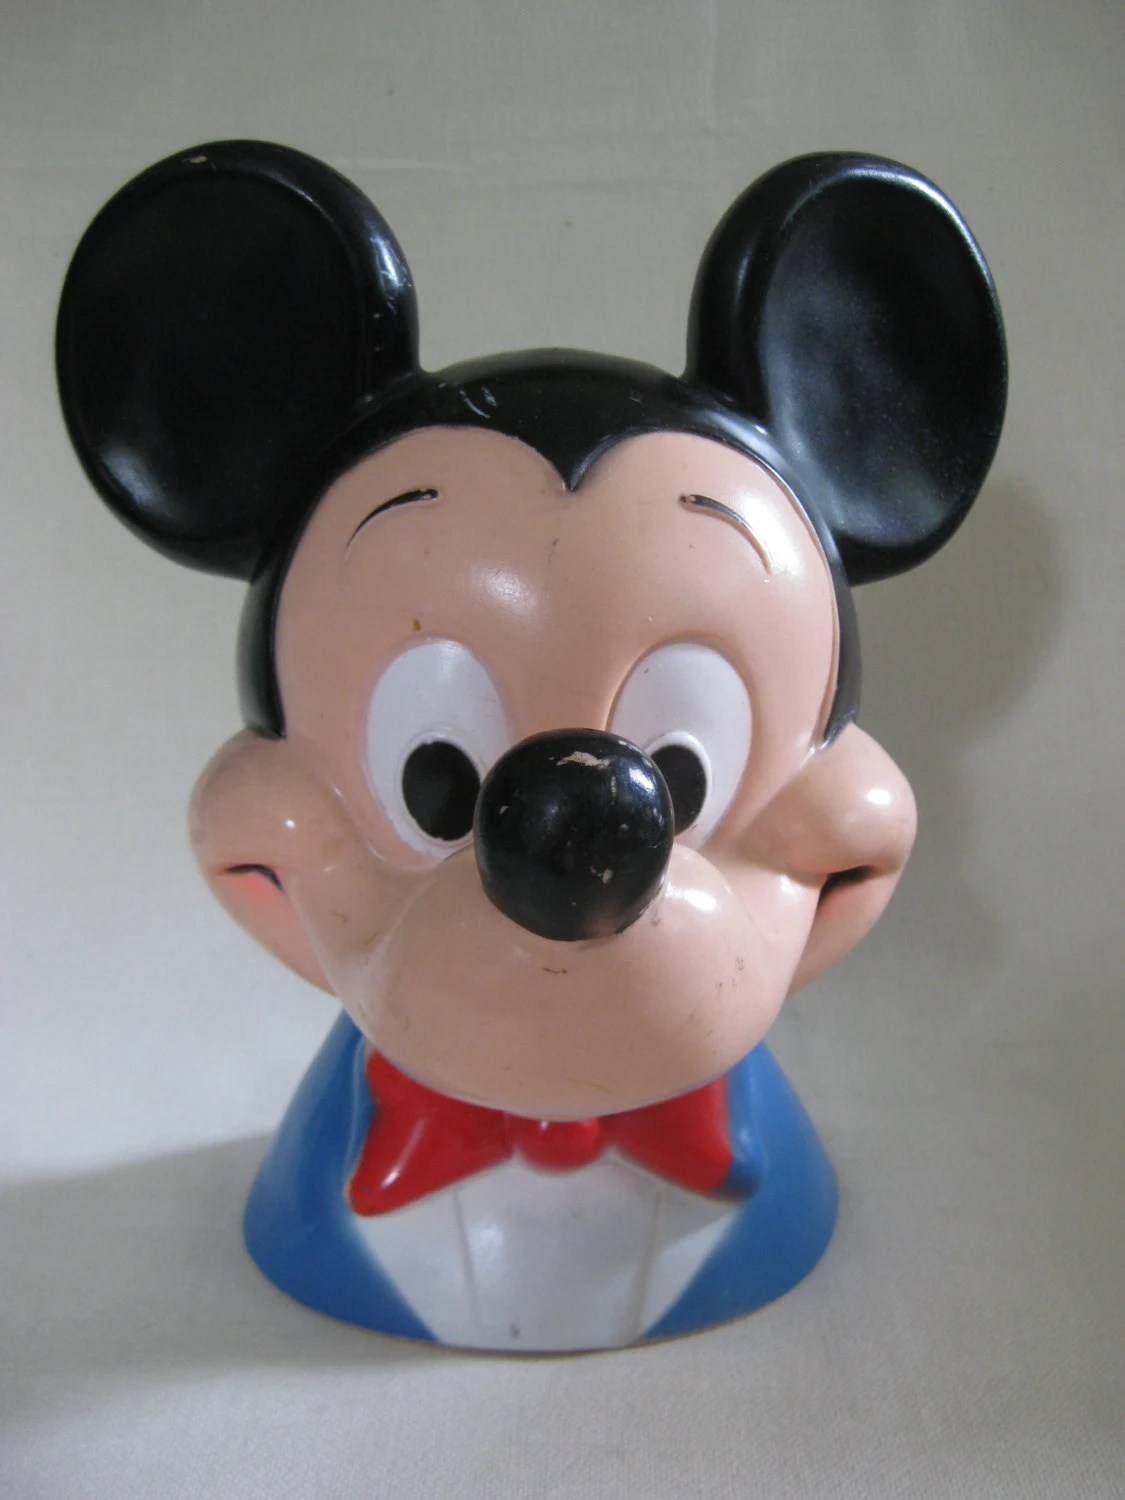 Plastikbank Vintage Large Mickey Mouse Bank By Vintagebythepound On Etsy